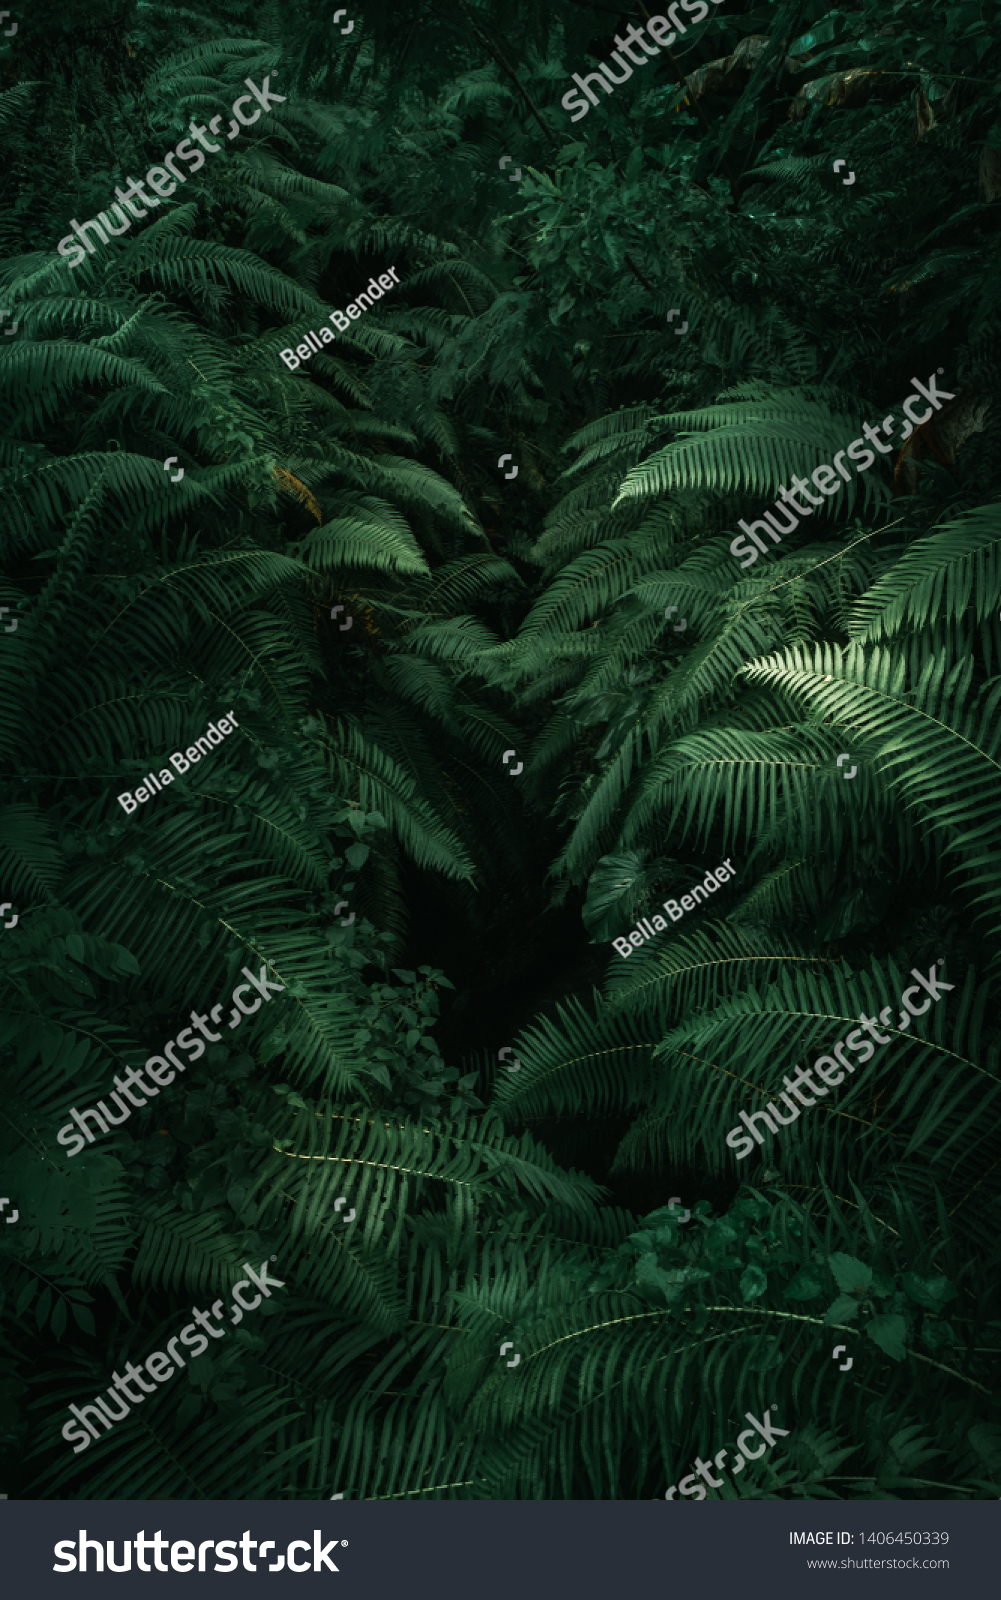 Ferns in the forest, Bali. Beautiful ferns leaves green foliage. Close up of beautiful growing ferns in the forest. Natural floral fern background in sunlight.  #1406450339